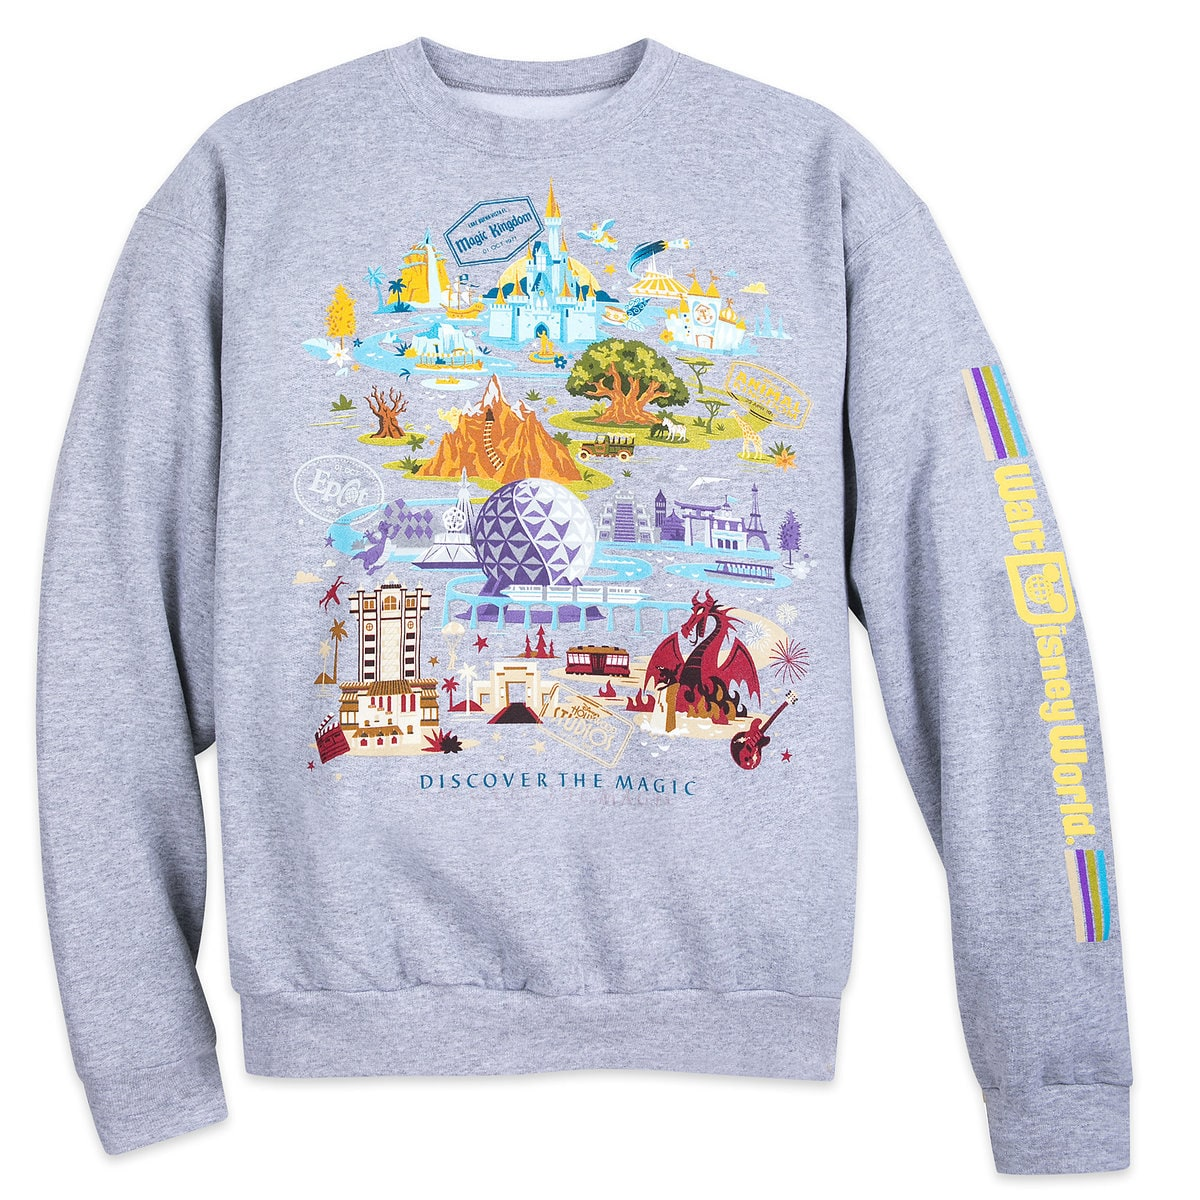 15adde4d42cf97 Product Image of Walt Disney World Pullover Sweatshirt for Adults # 1